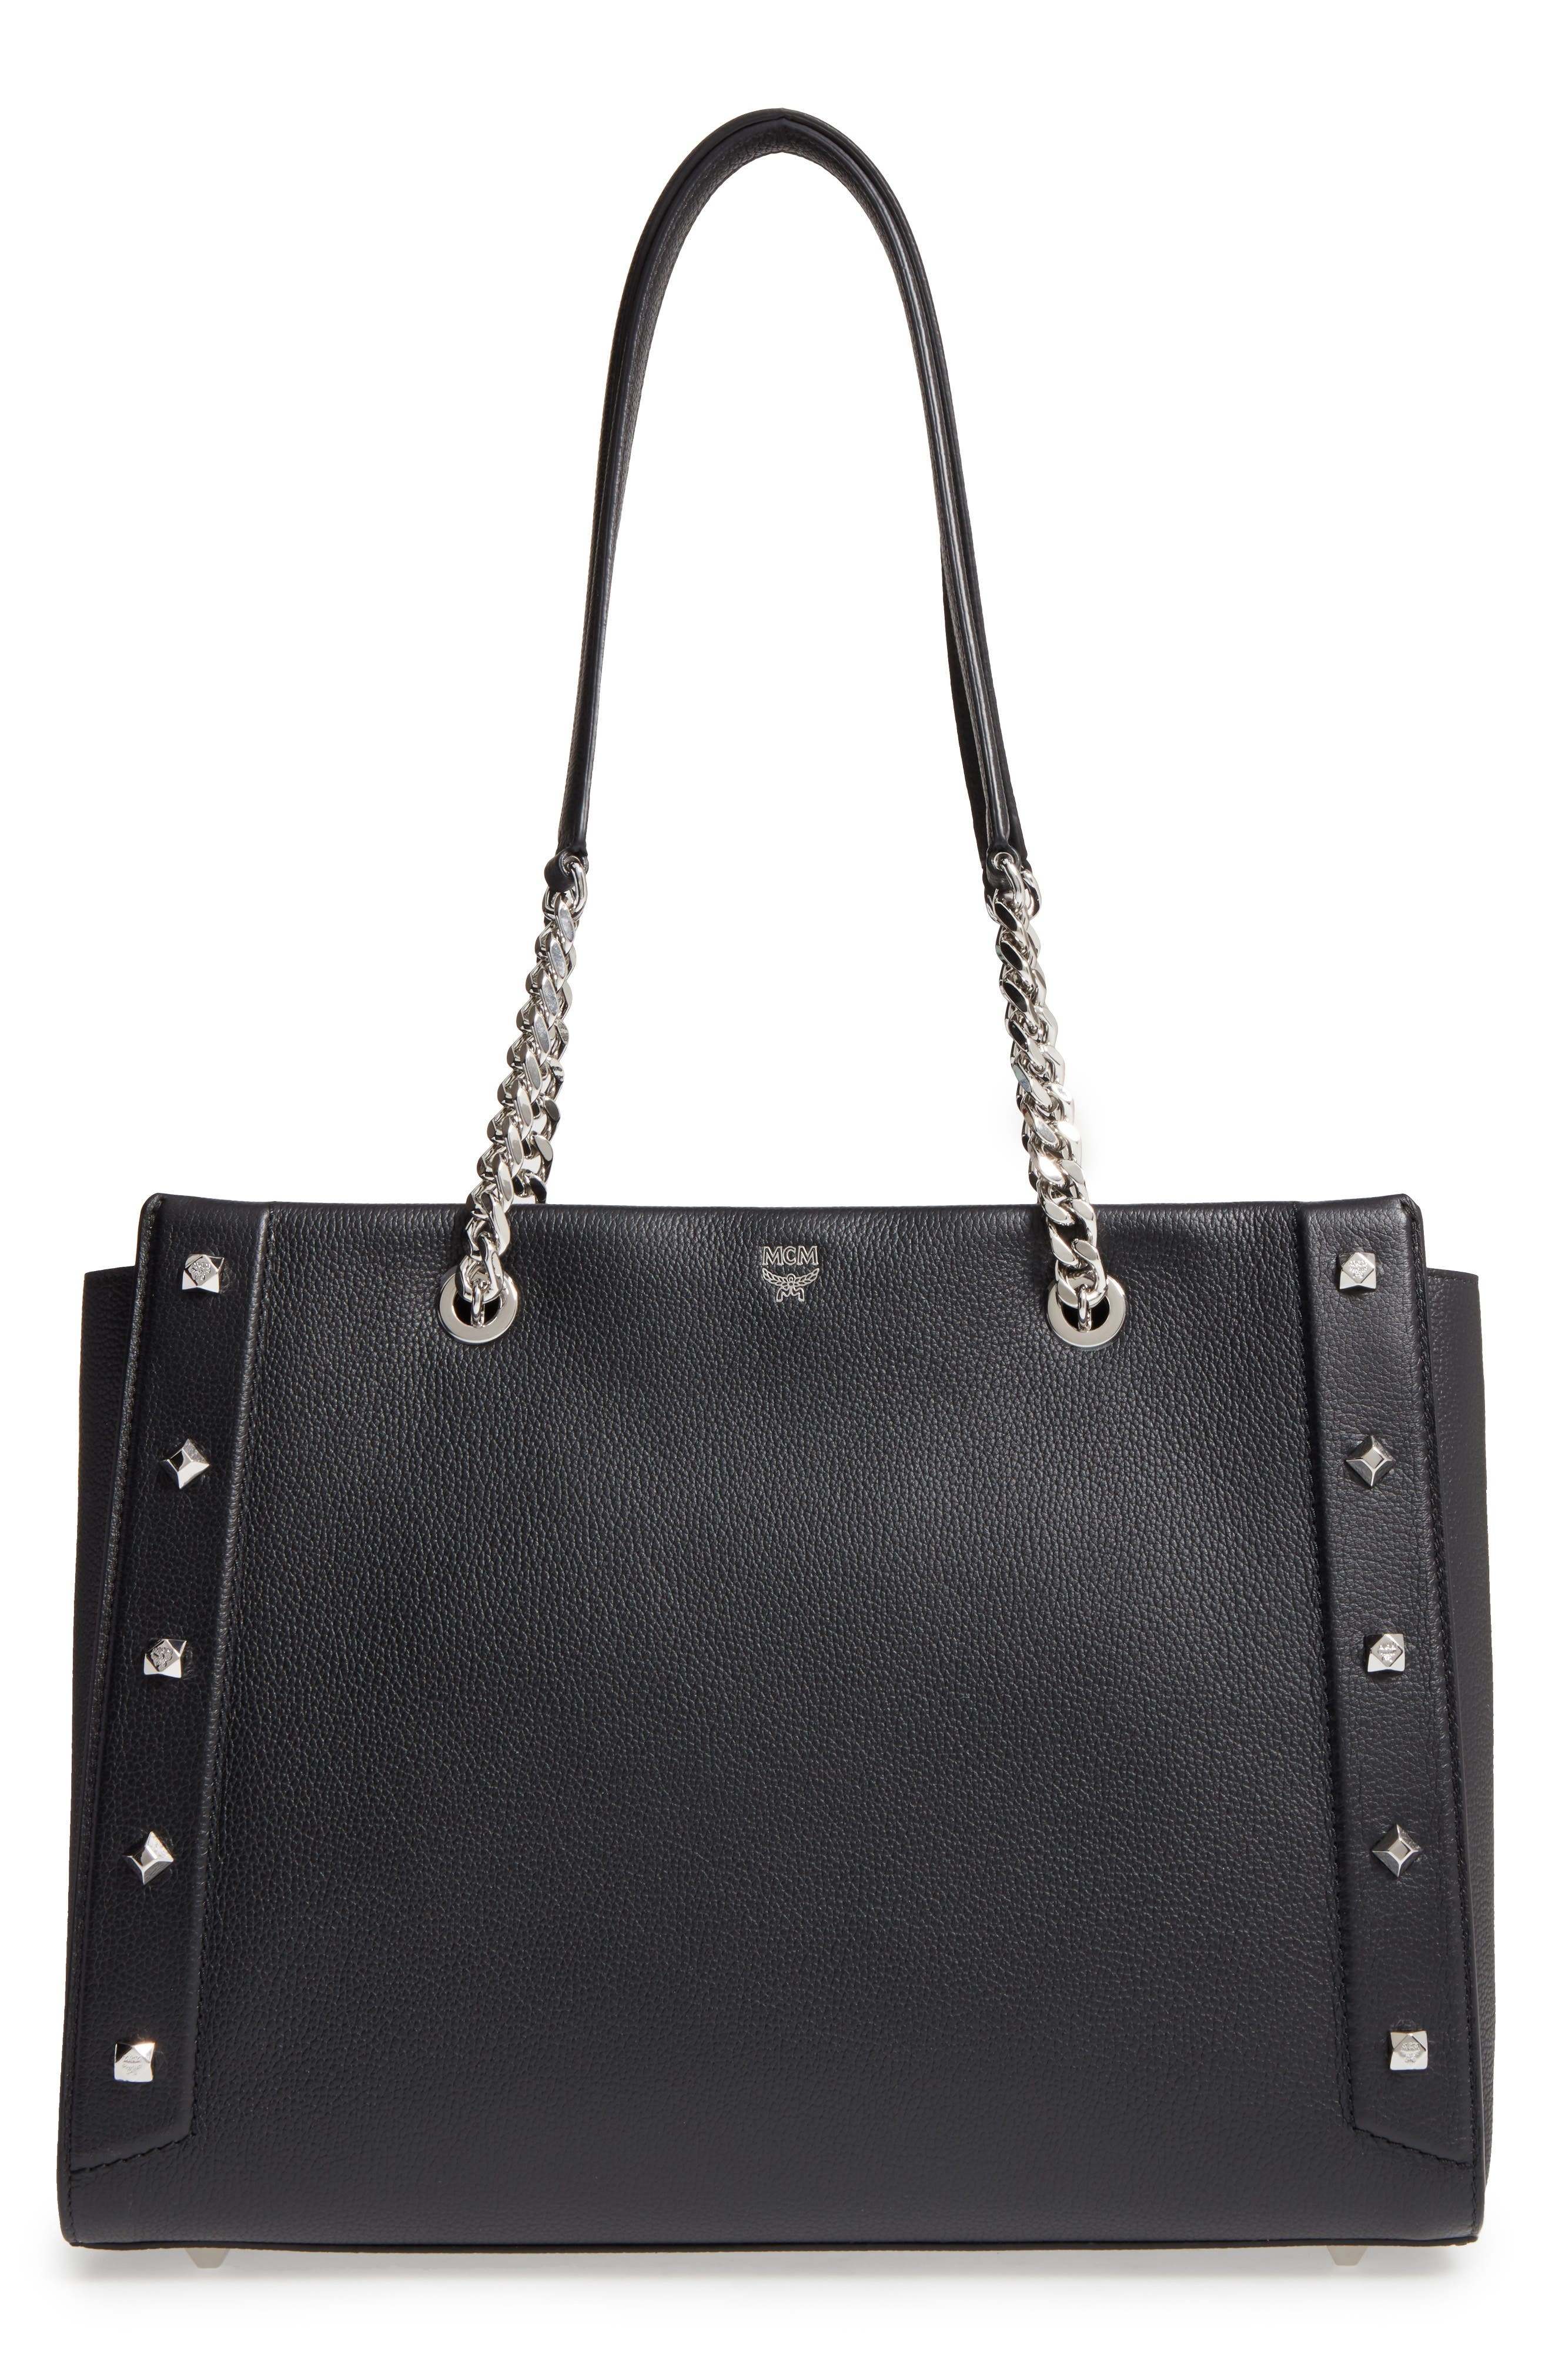 Alternate Image 1 Selected - MCM Large Catherine Leather Tote